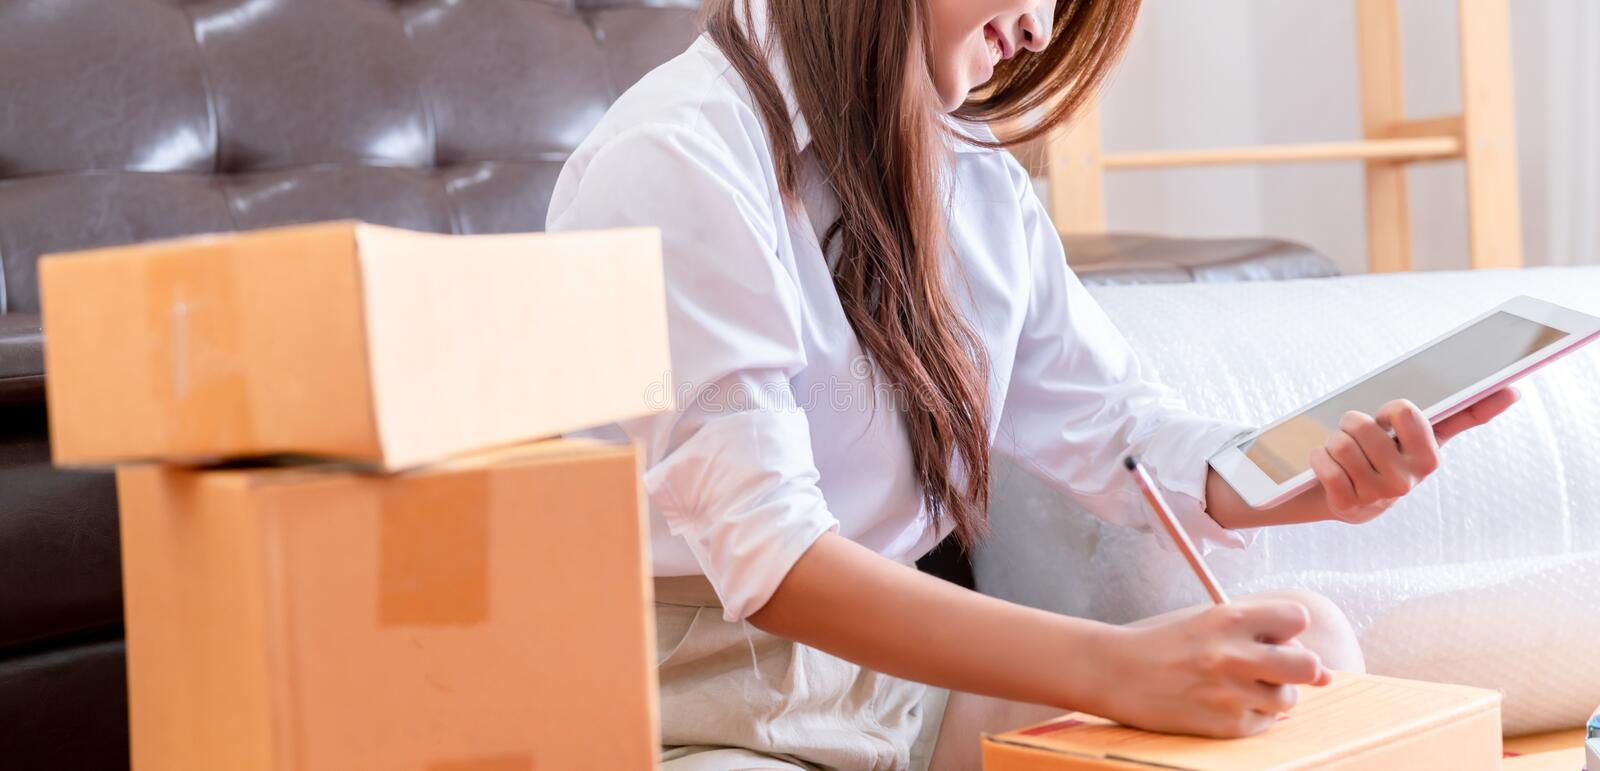 Working woman sme business at office in home interior her checking order from tablet. For customer and online delivery for ready packing in bedroom royalty free stock images